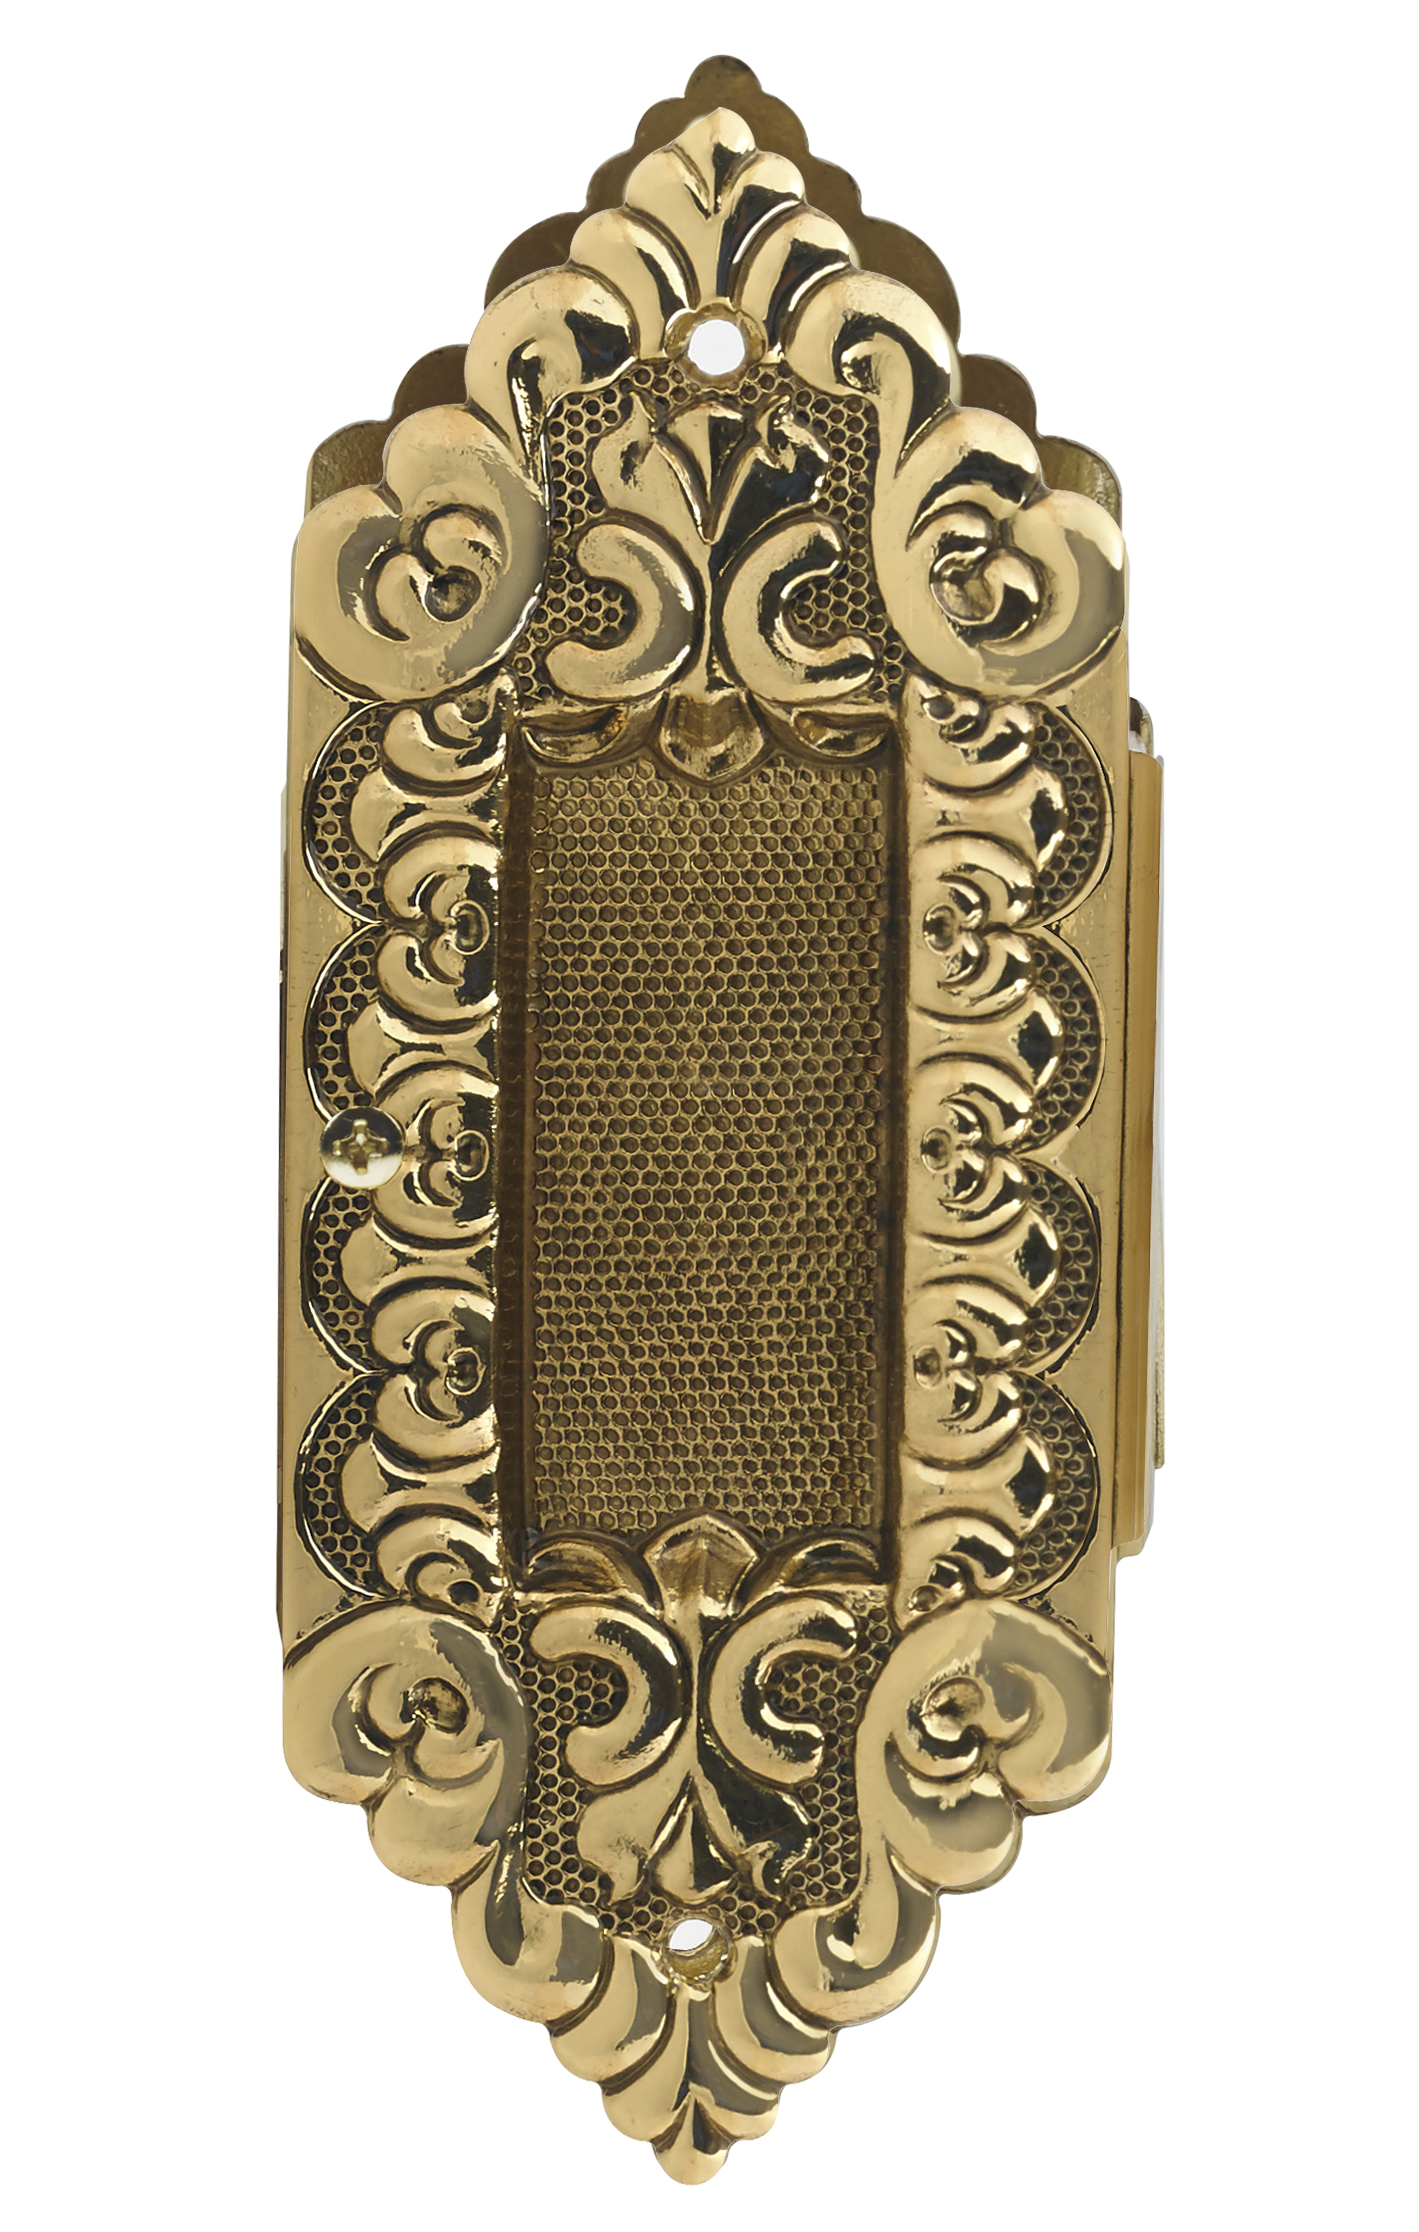 DARBY 2 POCKET DOOR PULL SOLID DECORATIVE BRASS POCKET TRIM SET PASSAGE MORTISE Commercial Residential